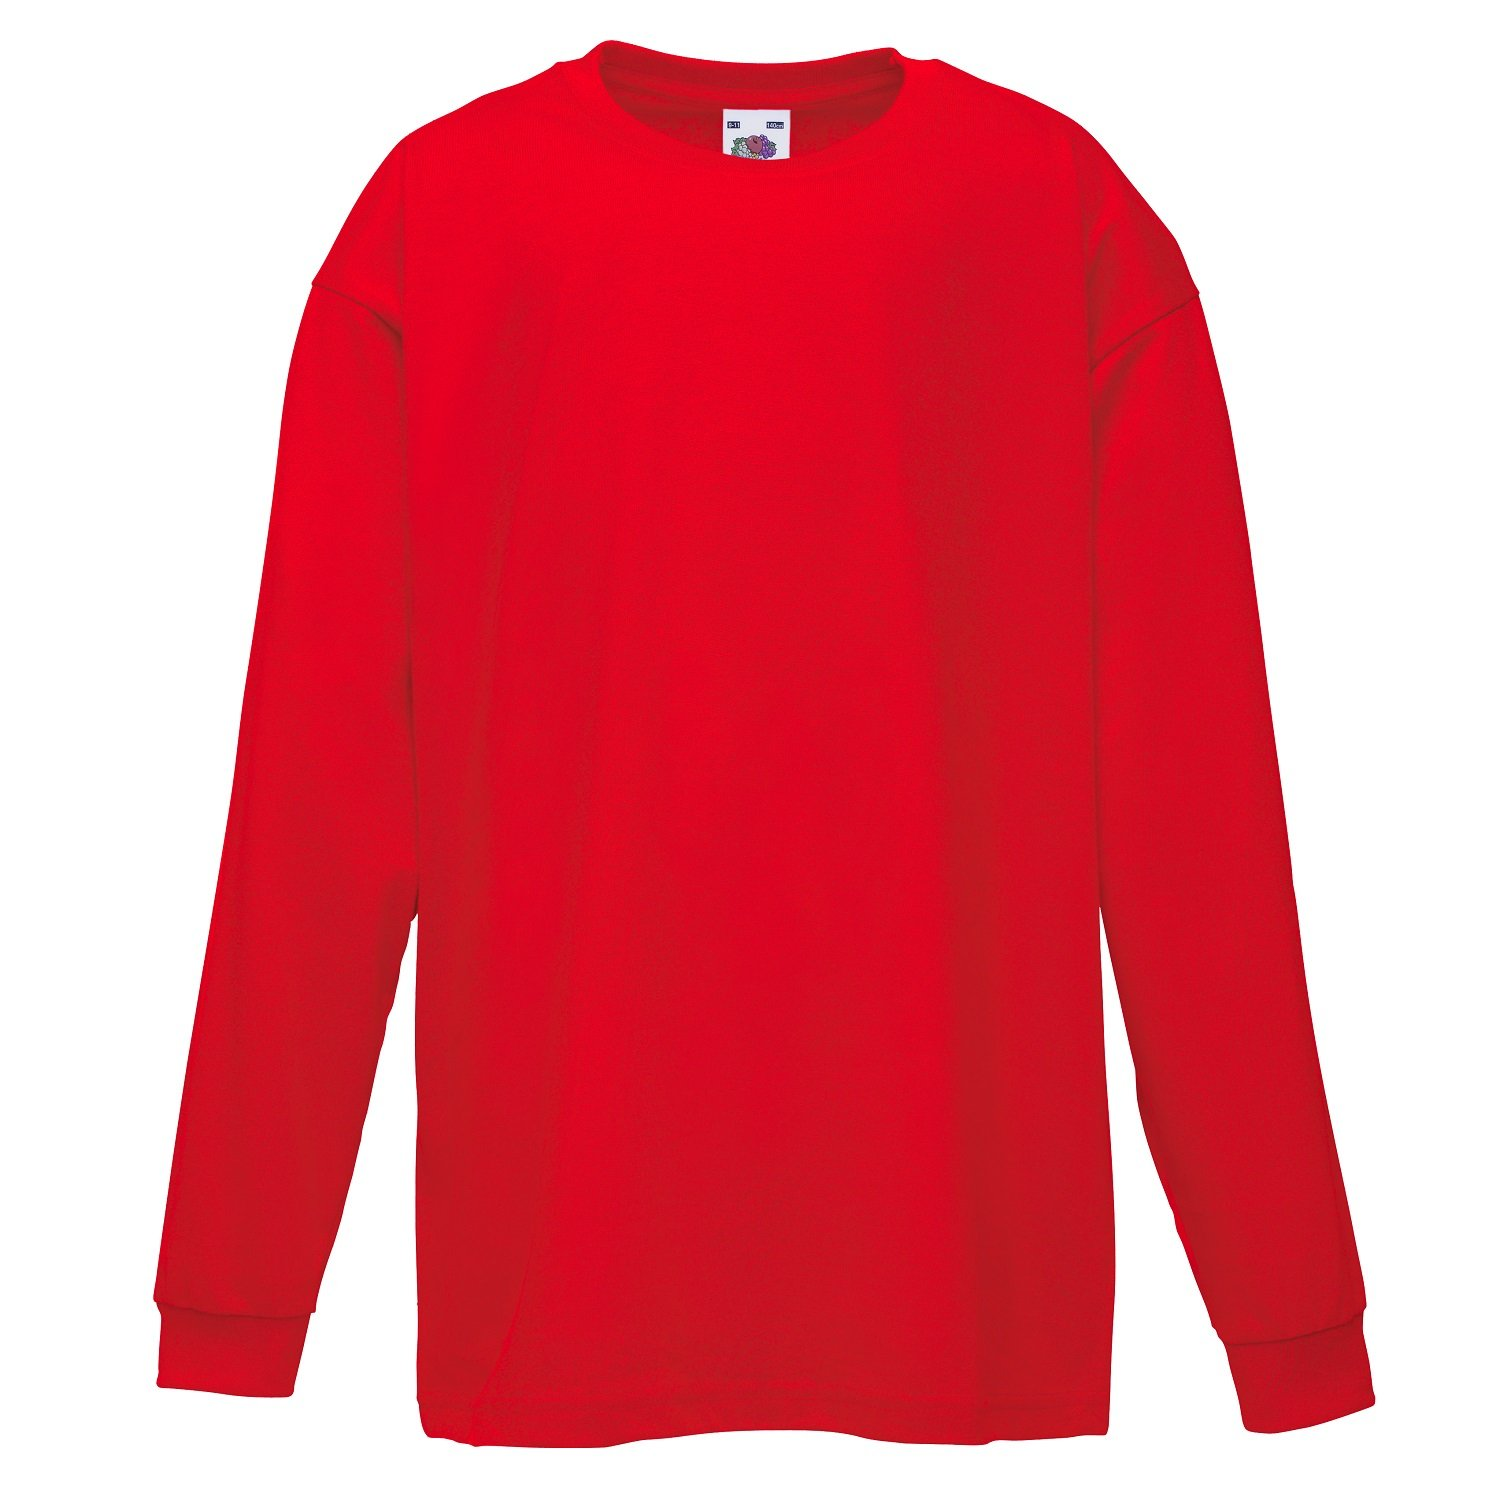 Red Long Sleeve Shirt Custom Shirt